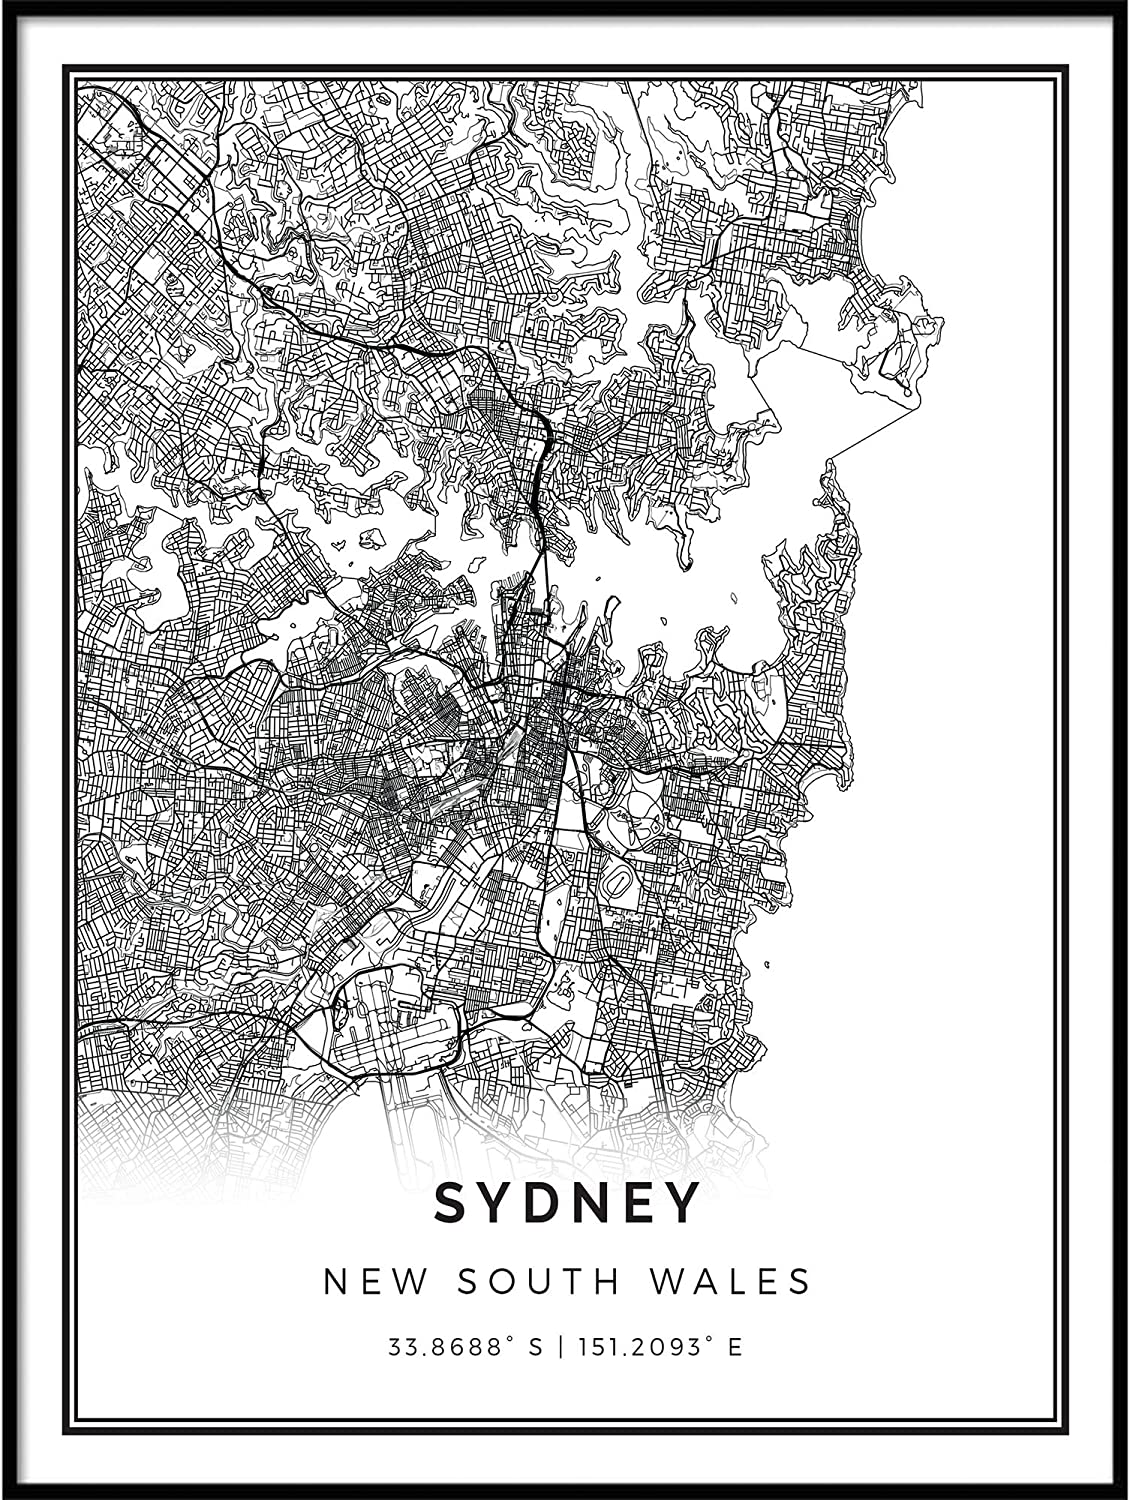 Sydney map Poster Print | Modern Black and White Wall Art | Scandinavian Home Decor | New South Wales City Prints Artwork | Fine Art Posters 18x24